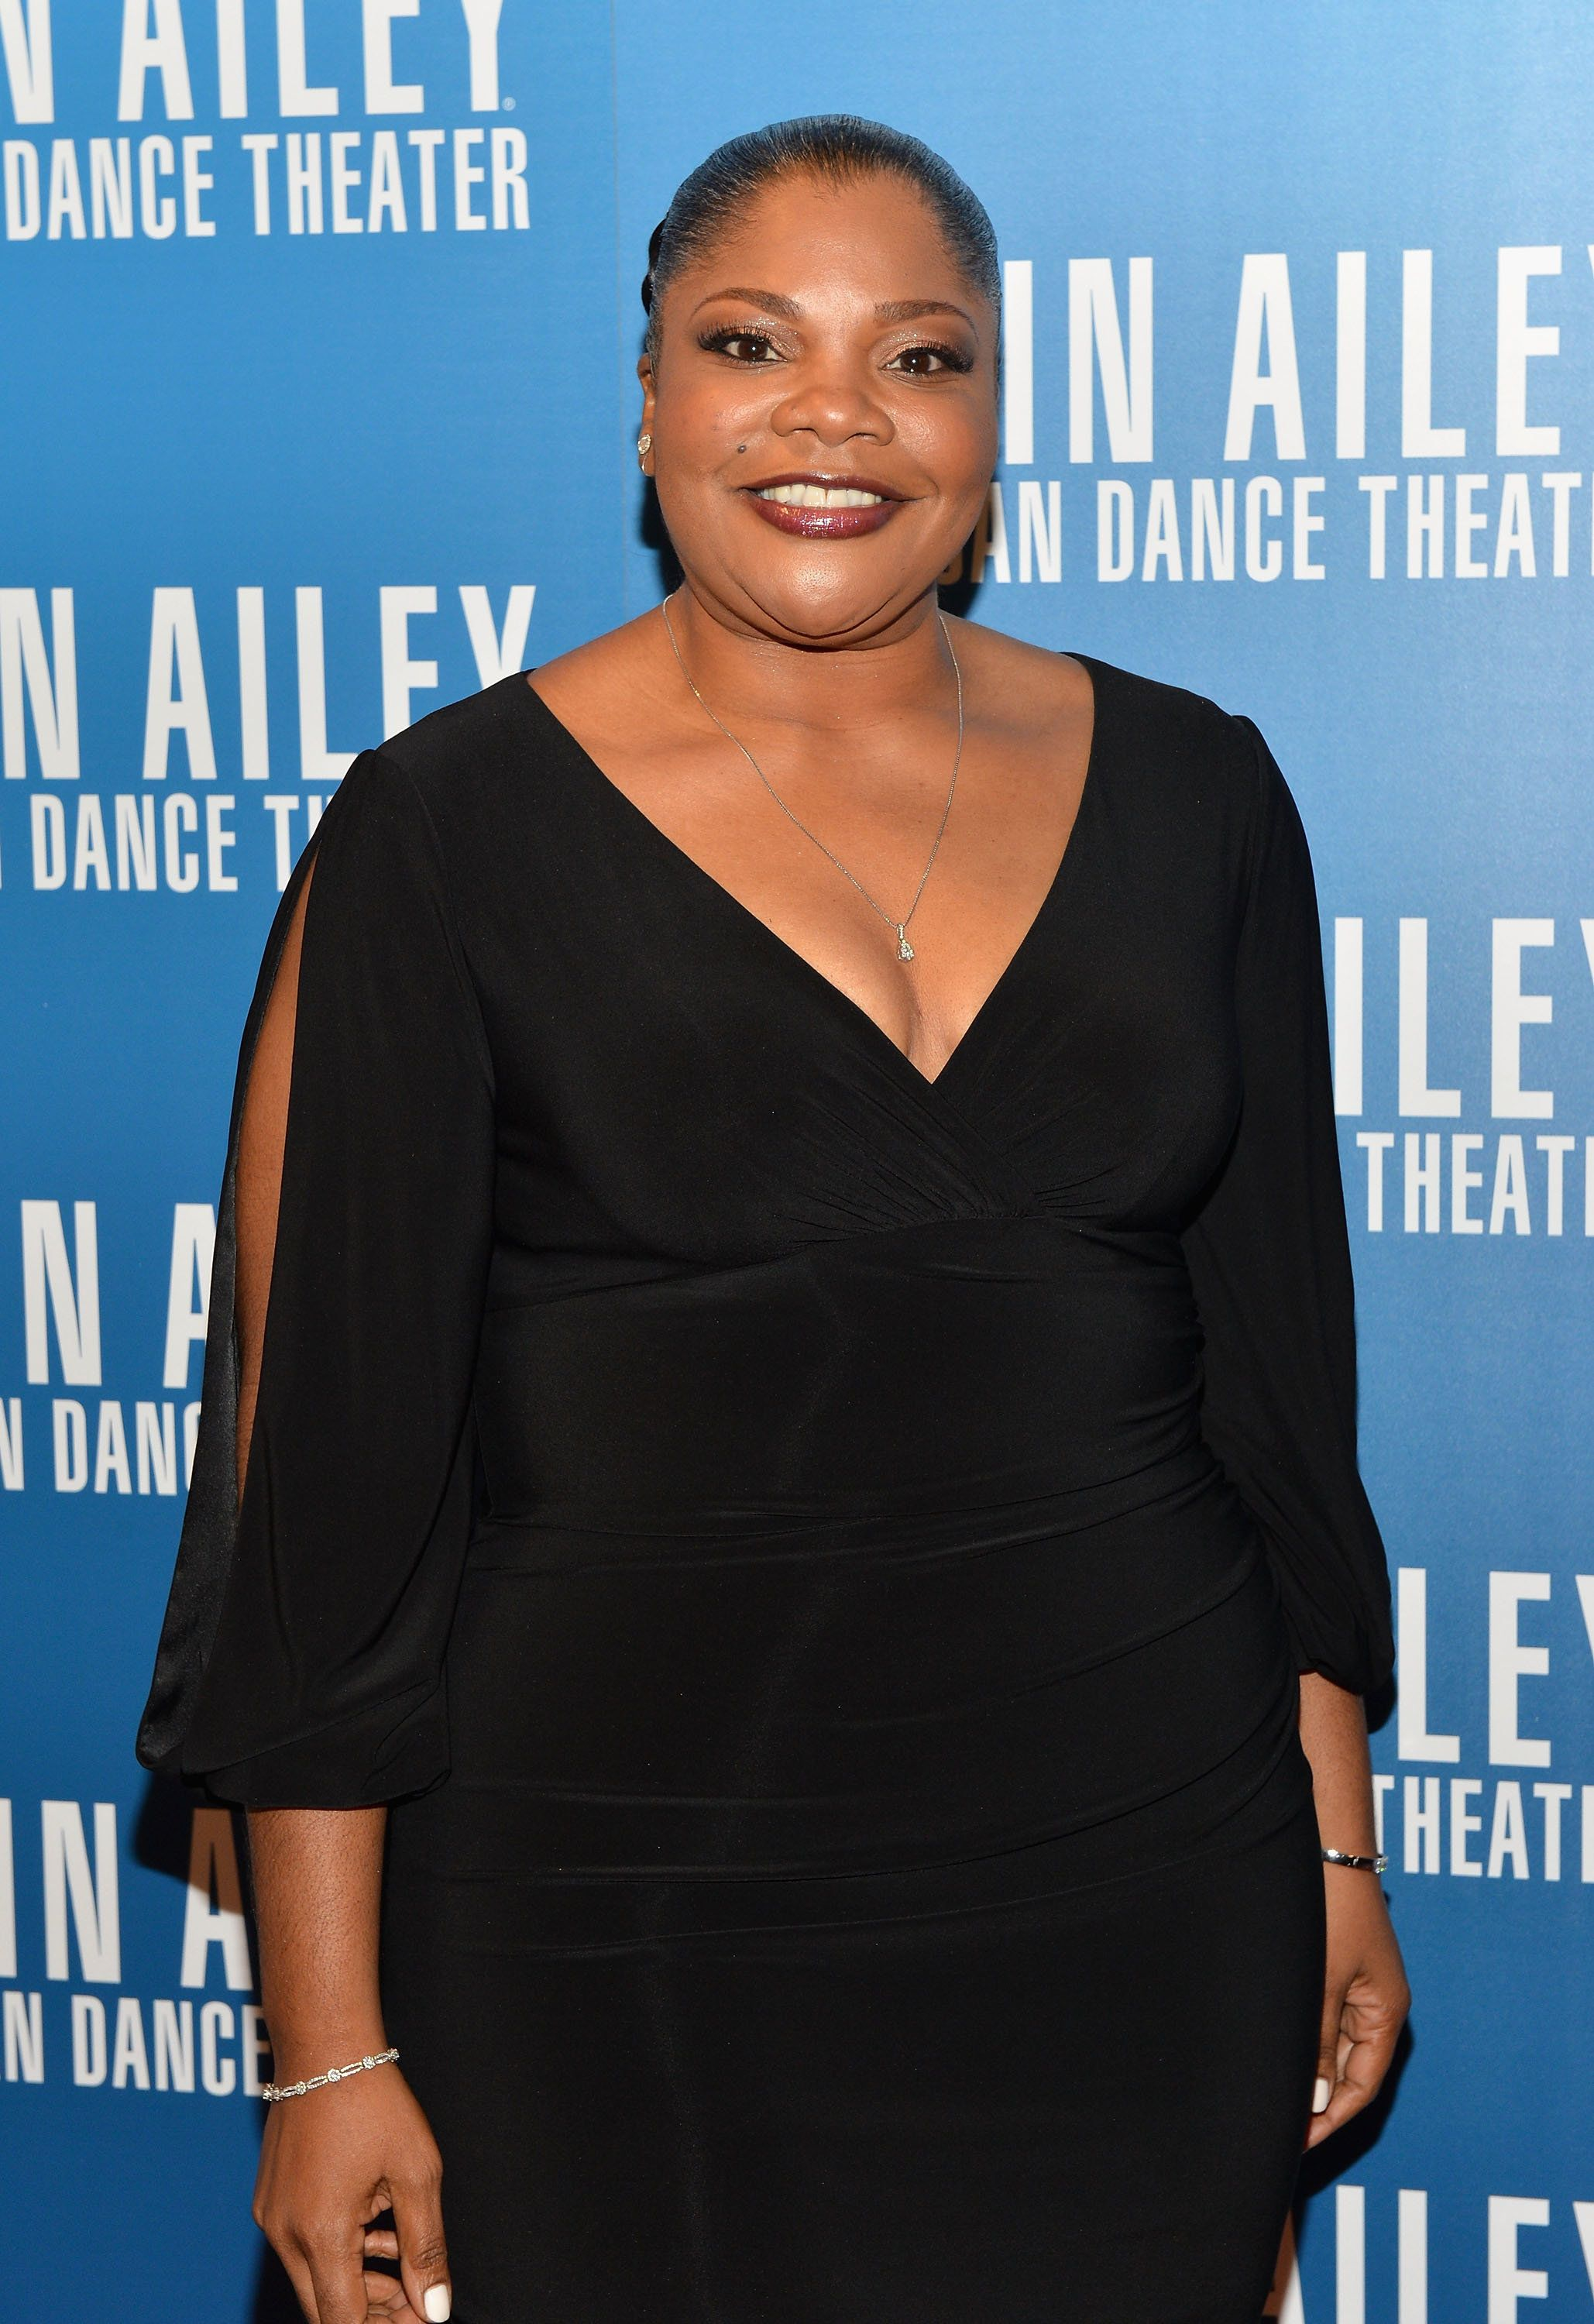 NEW YORK, NY - NOVEMBER 28:  Comedienne/actress Mo'Nique attends the Alvin Ailey American Dance Theater Opening Night Gala at New York City Center on November 28, 2012 in New York City.  (Photo by Slaven Vlasic/Getty Images)